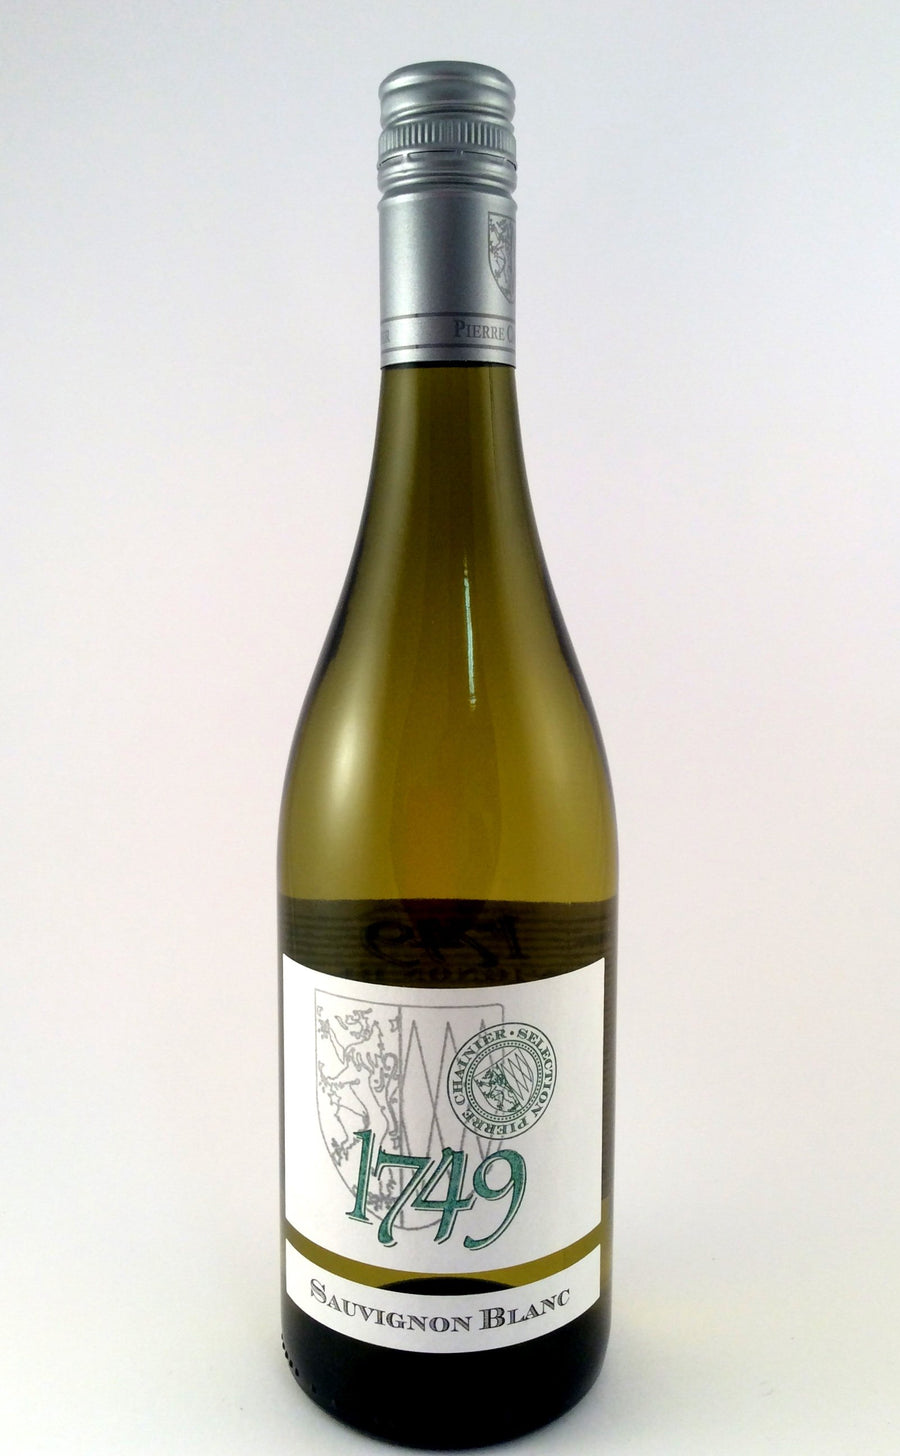 Pierre Chainier Selection 1749 Sauvignon Blanc-Wineseeker